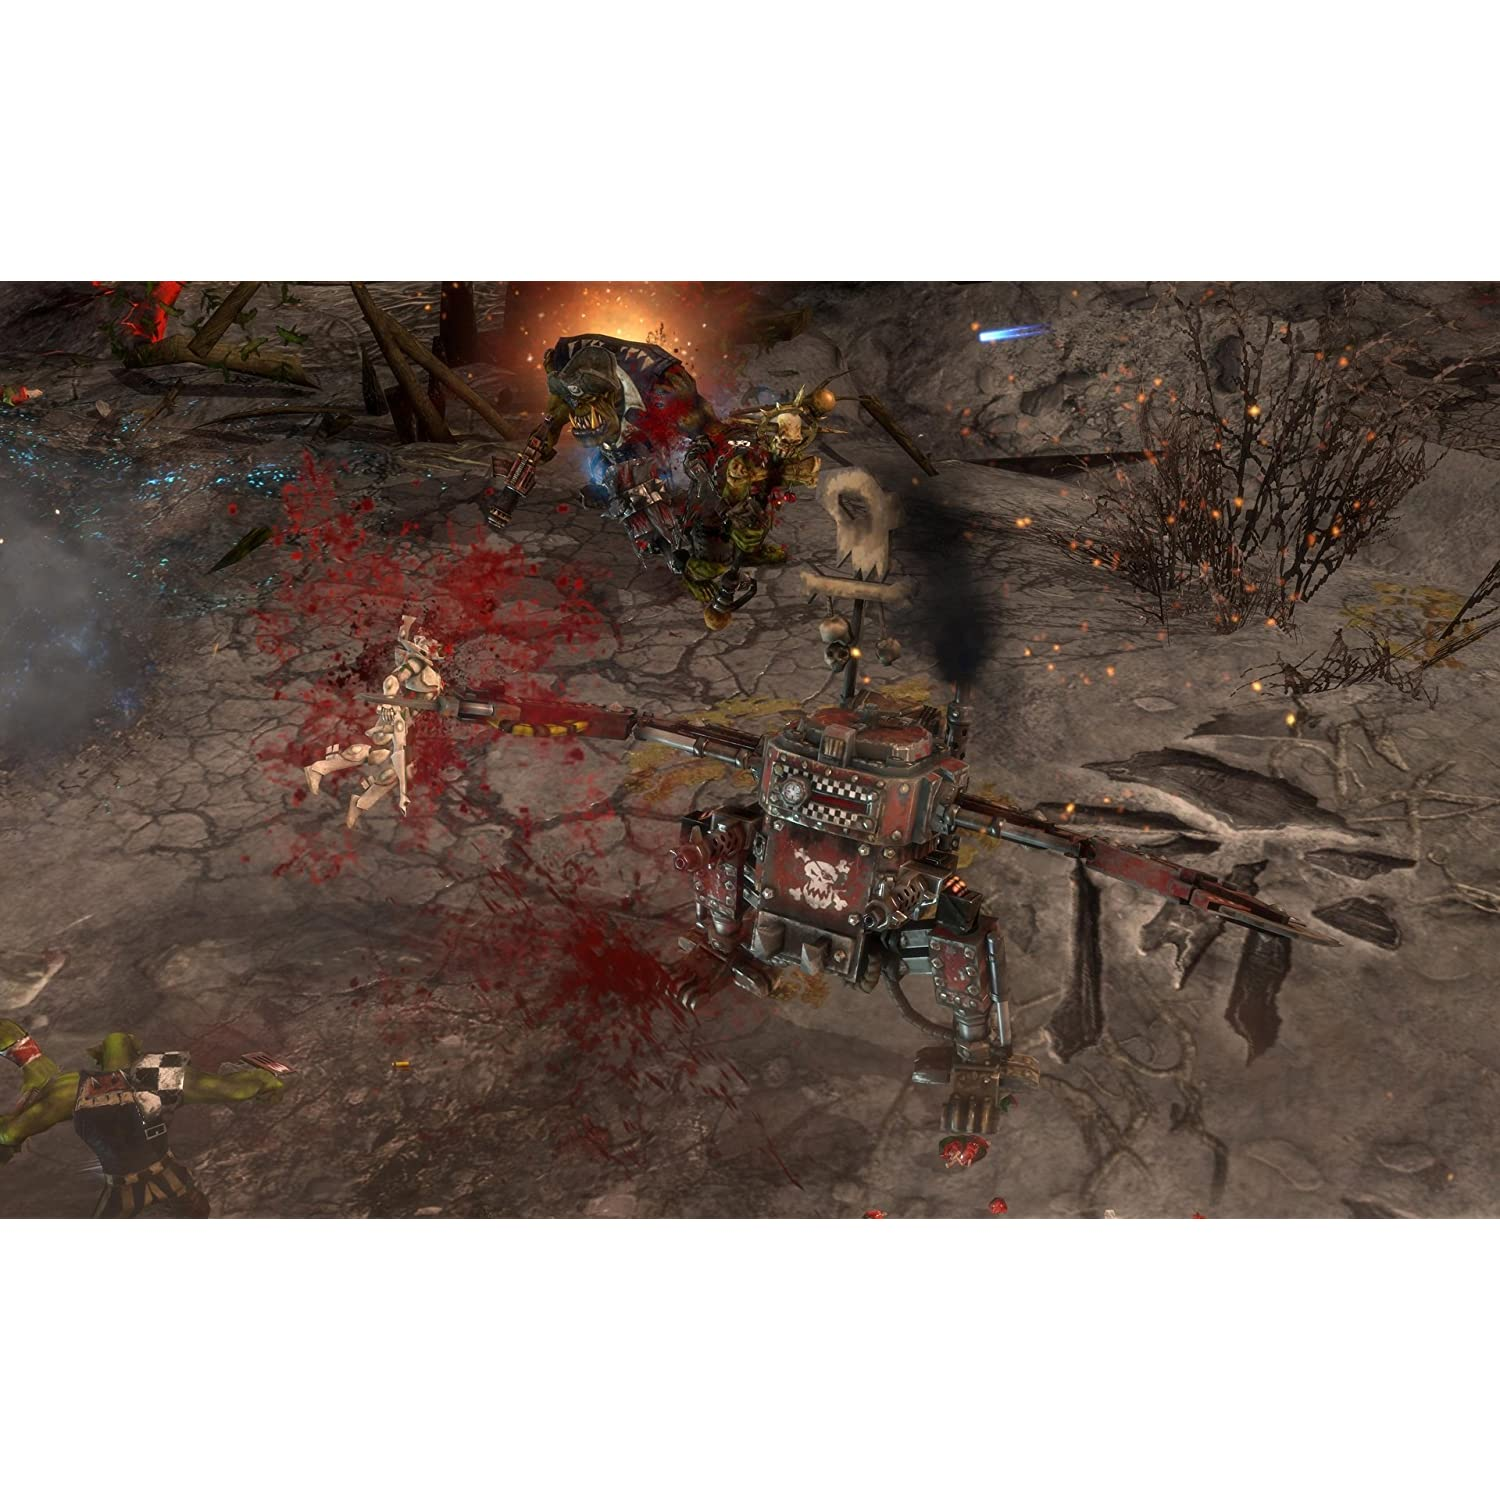 Online Game, Online Games, Video Game, Video Games, Game Downloads, Core Games, Strategy, PC Game, Warhammer, Download, Warhammer 40k: Dawn of War II Retribution